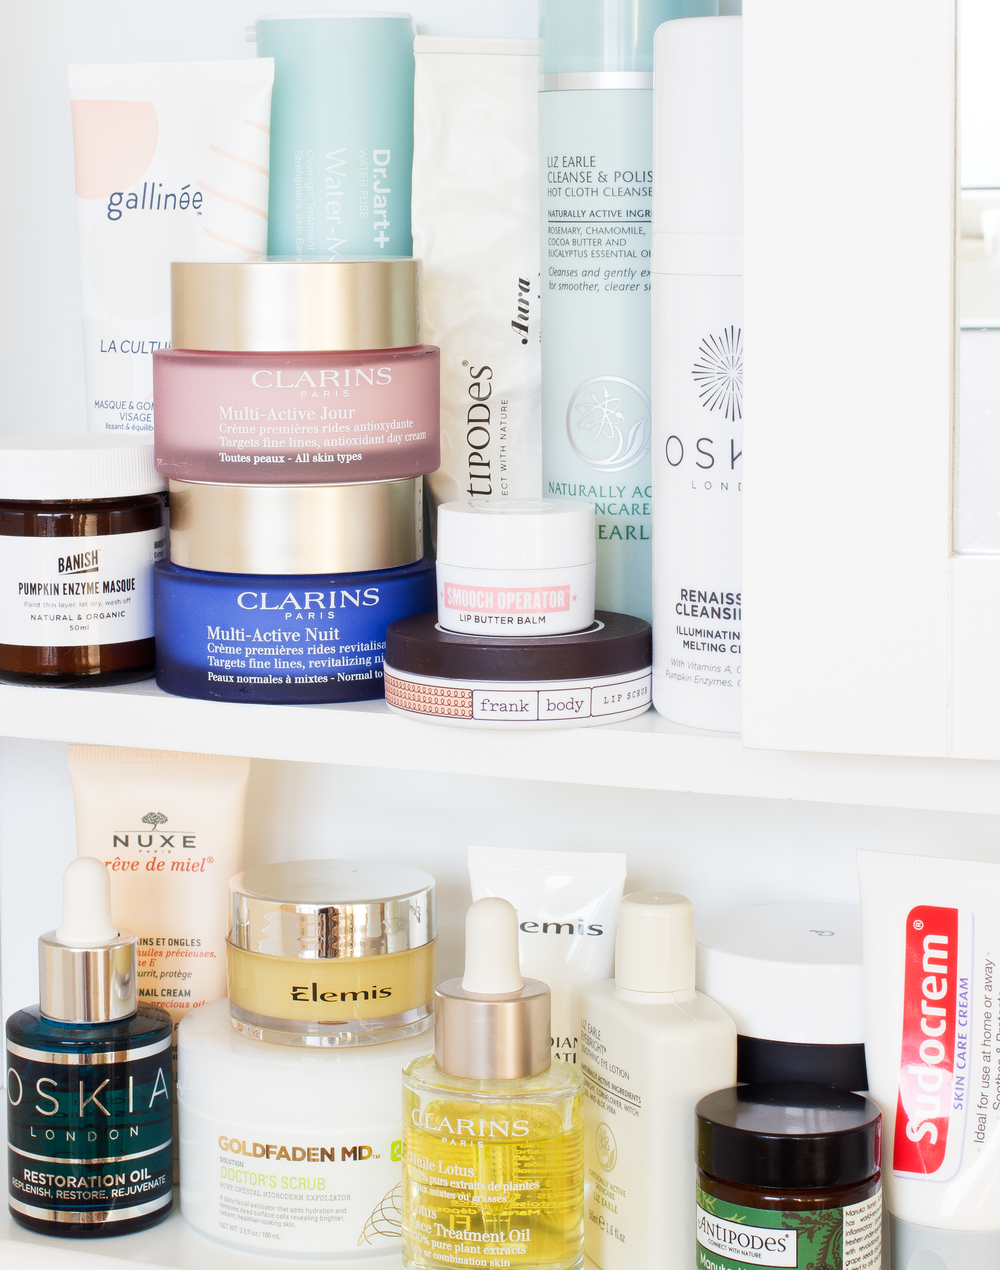 How to Properly Store Your Skin Care Products